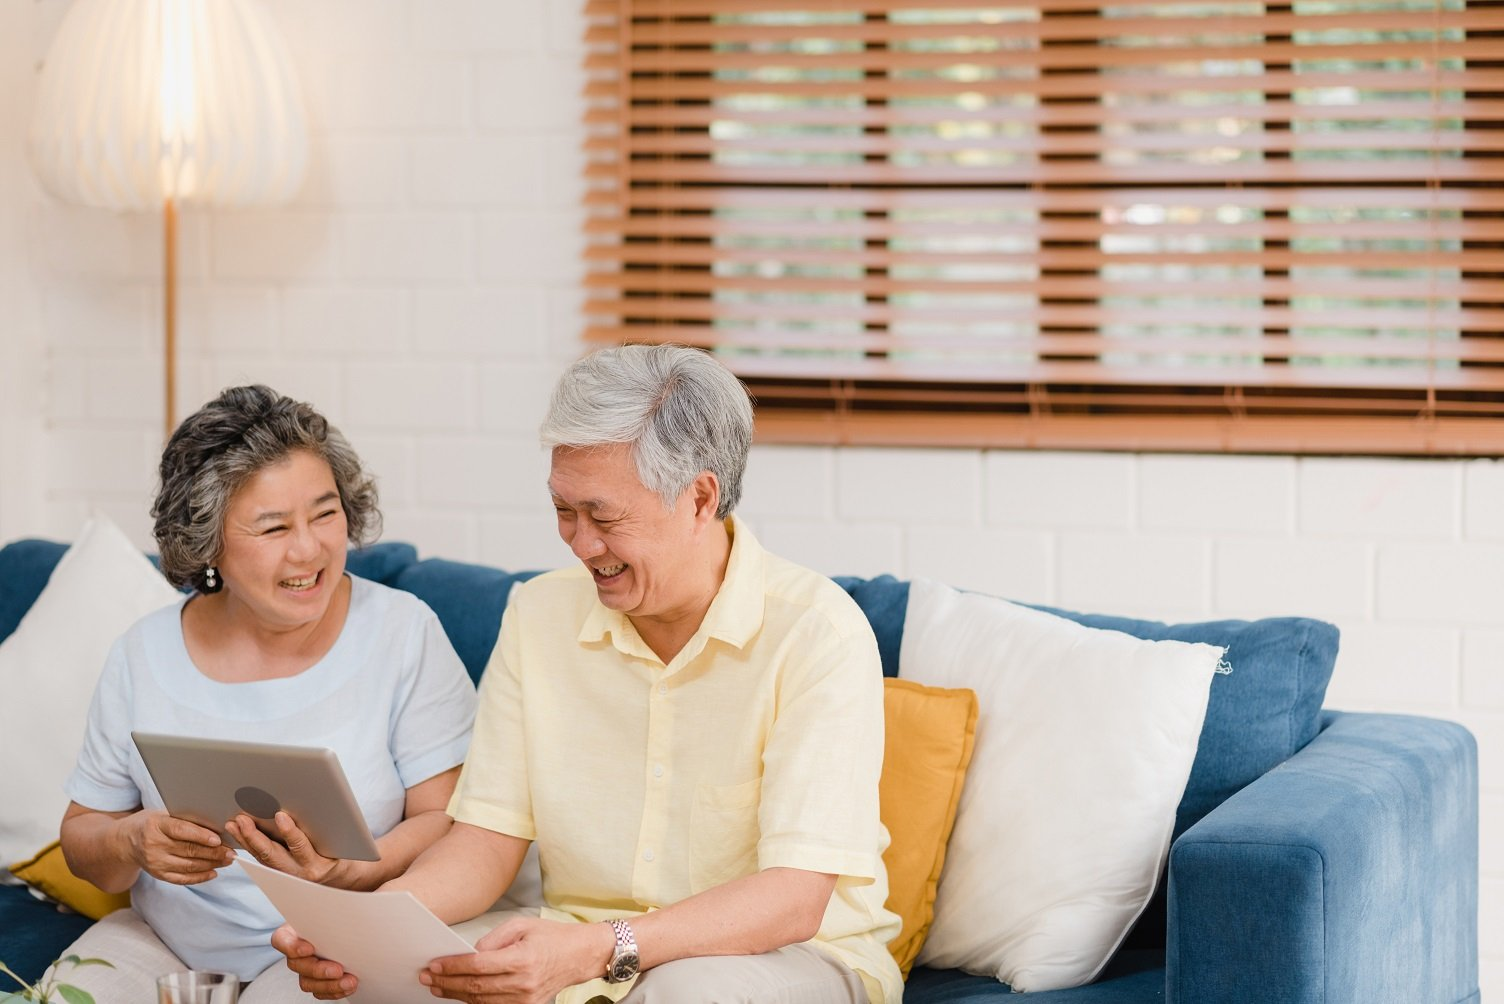 Asian elderly couple planning their retirement